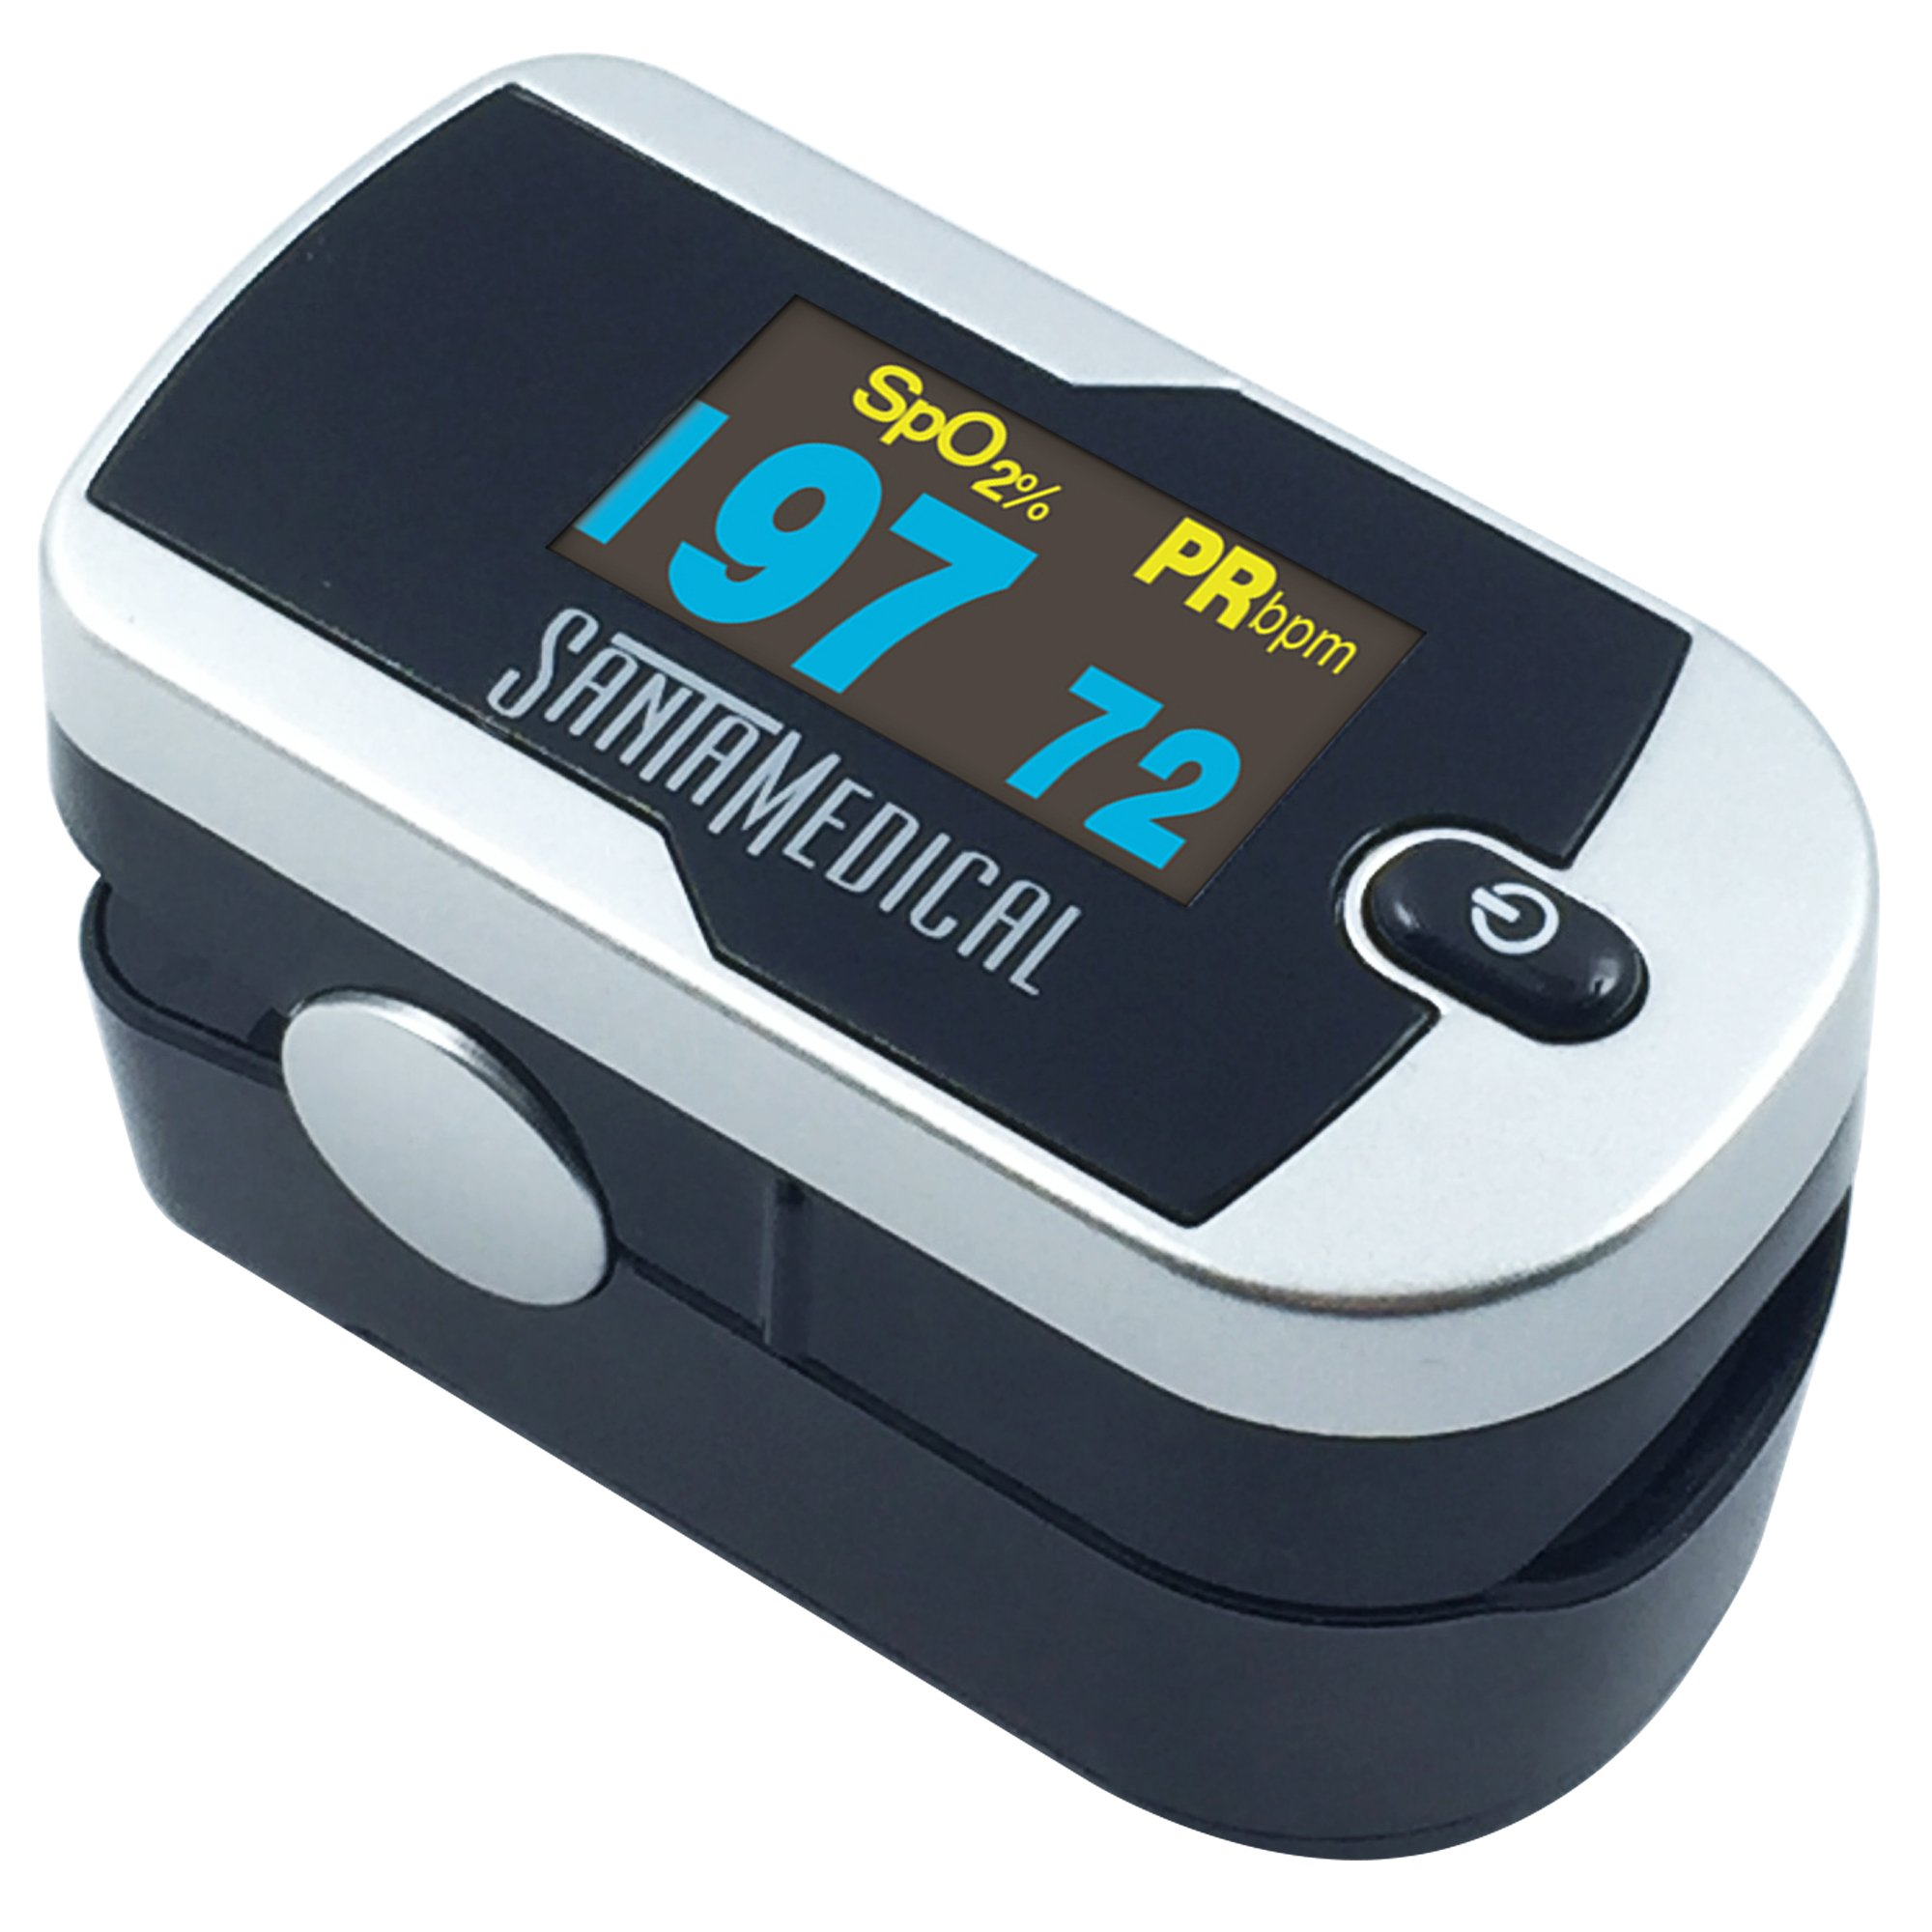 Santamedical Generation 2 OLED Fingertip Pulse Oximeter Oximetry Blood Oxygen Saturation Monitor with batteries and lanyard - Silver